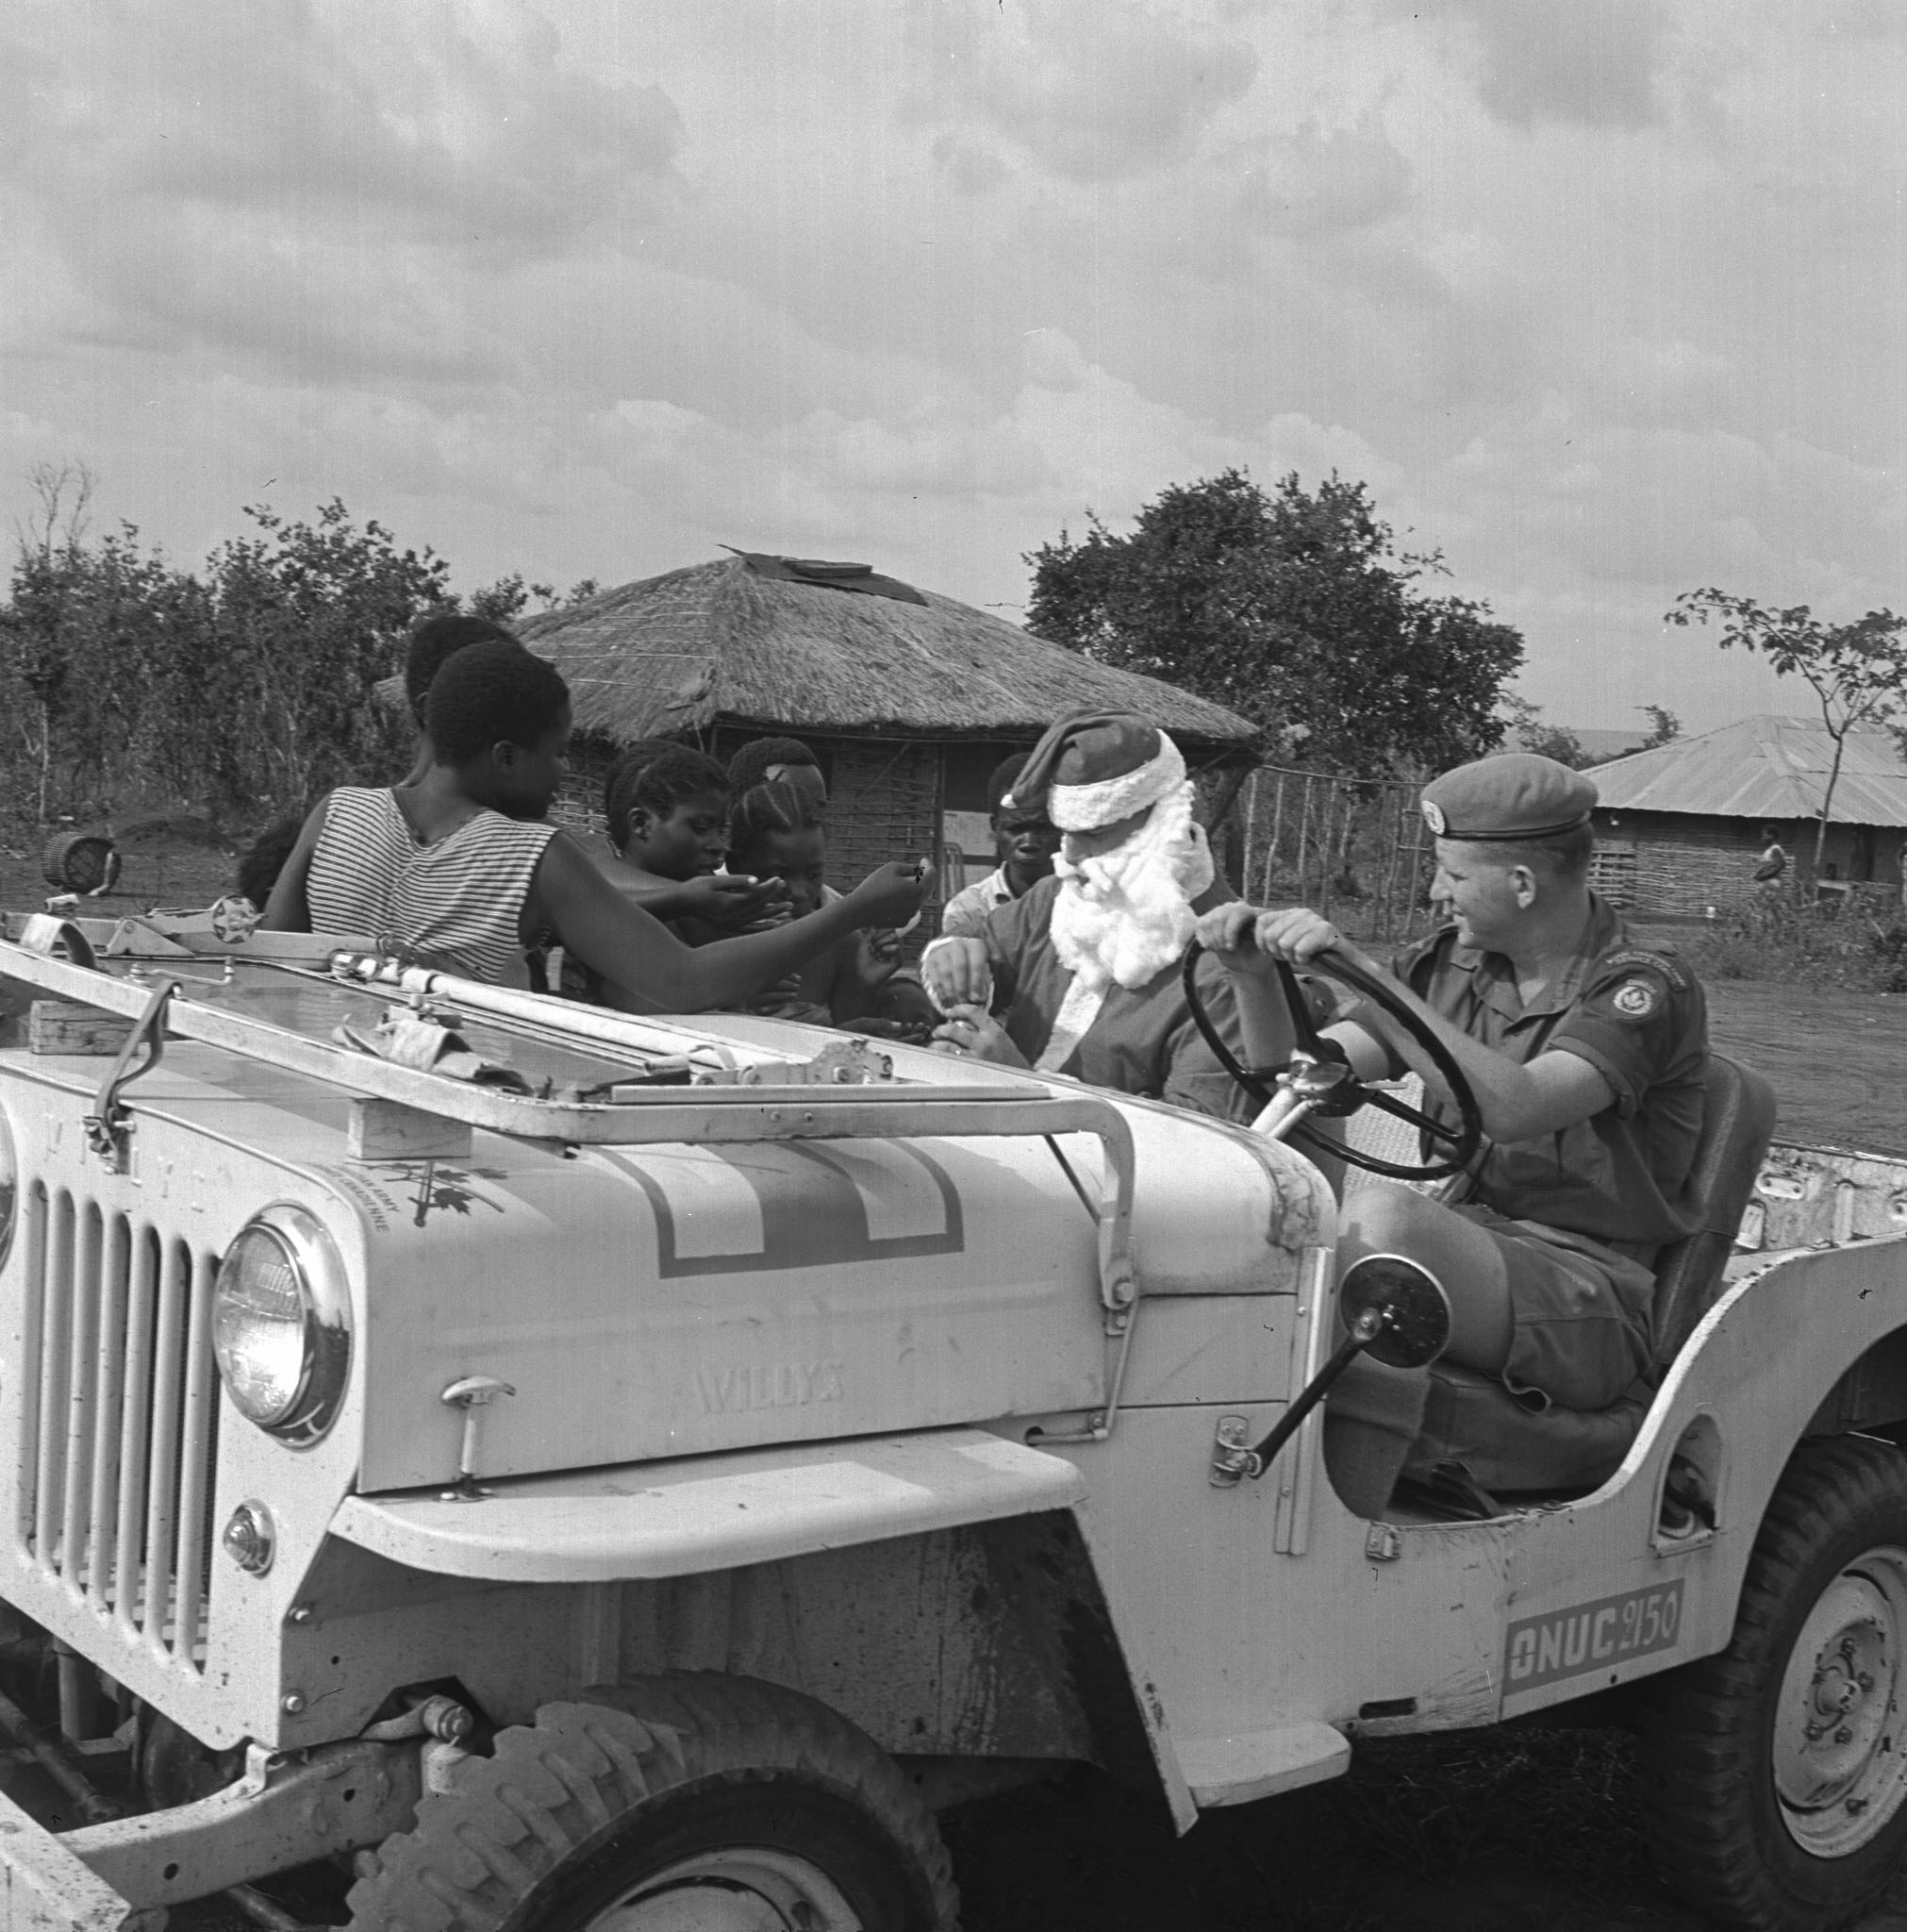 Driven by Private Kenneth Goble, Santa, a.k.a. Corporal Maurice LeClair, arrives by jeep in one of the villages close to Leopoldville, Congo. The members of No. 57 Canadian Signals Unit, part of the United Nations force in the Congo, visited the village to give candies and other gifts to the children in December 1963. PHOTO: DND Archives